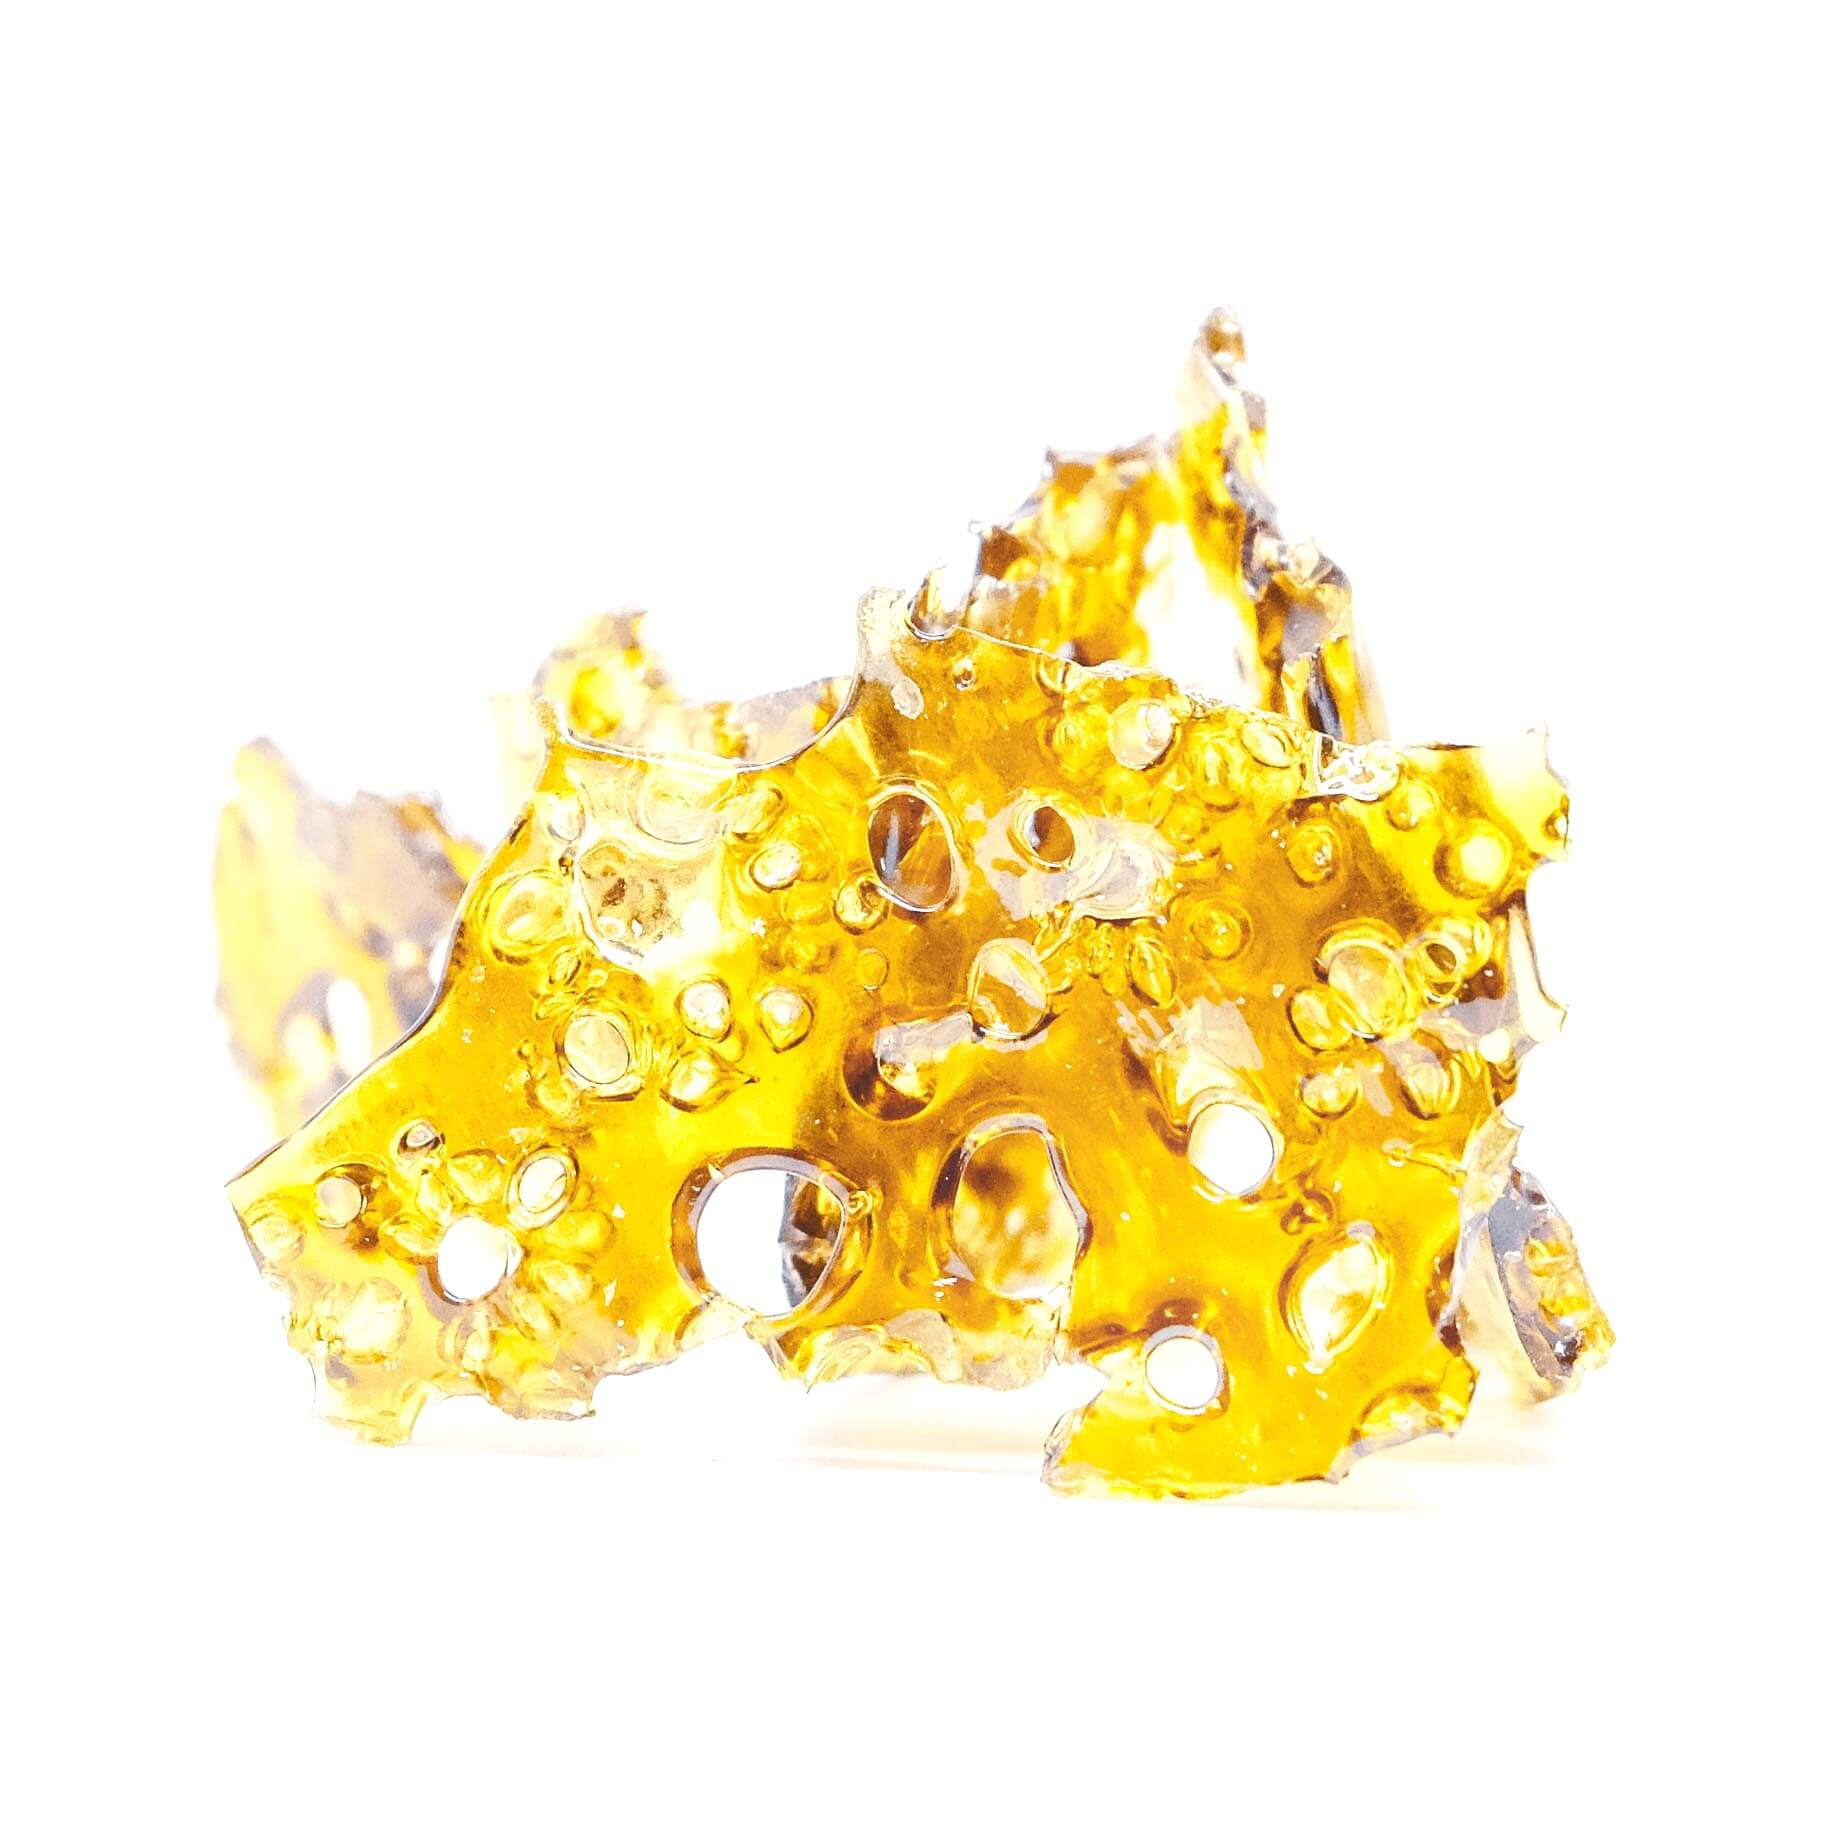 Buy PINEAPPLE EXPRESS SHATTER Uk Online